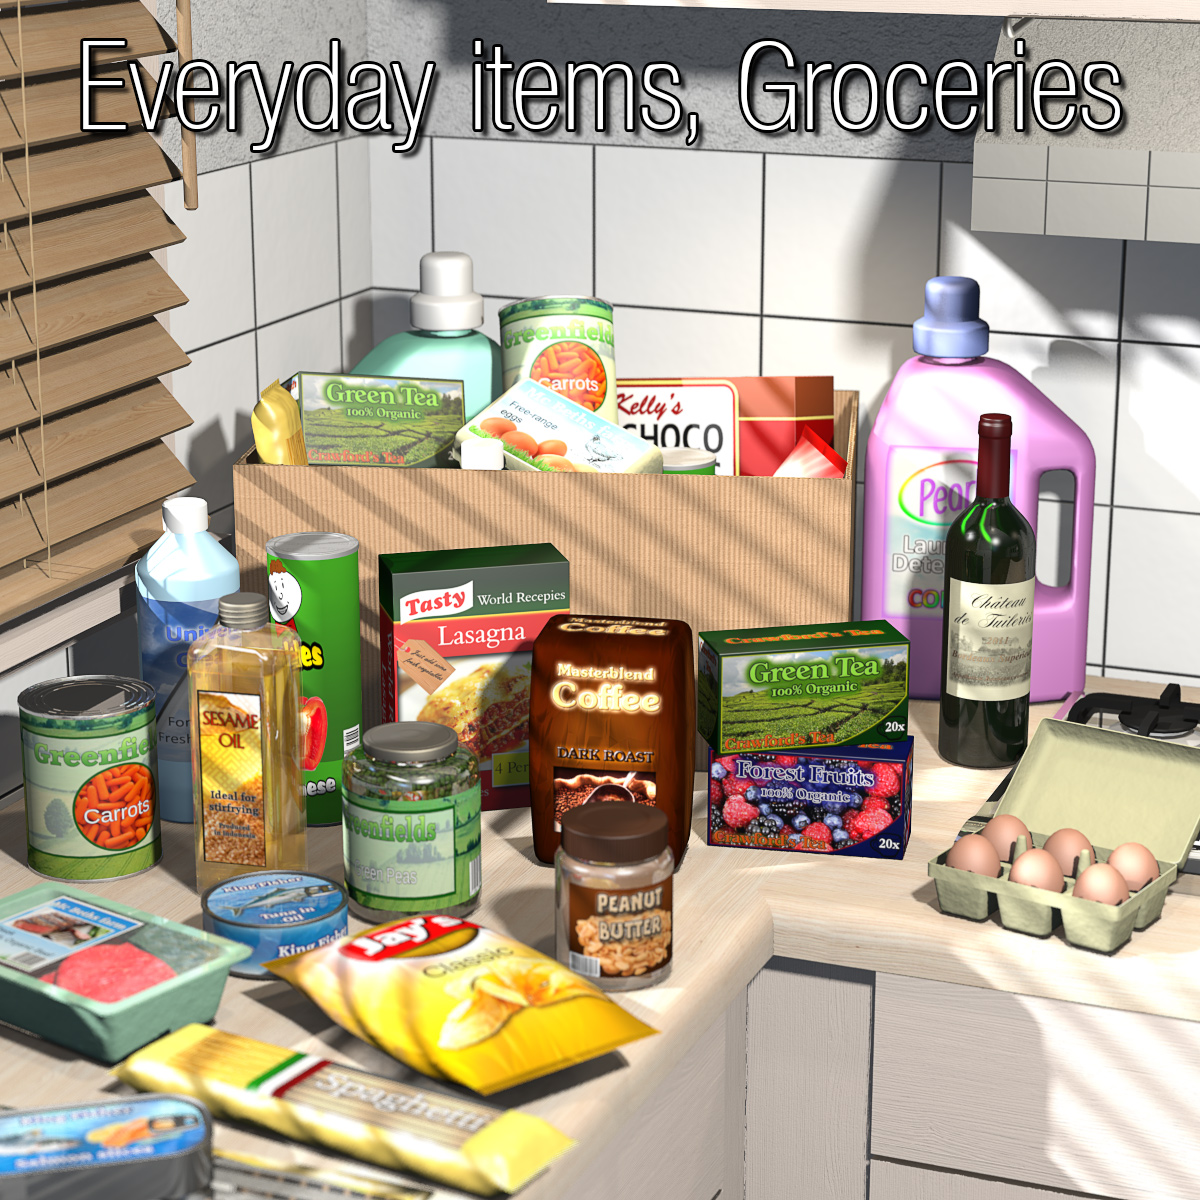 everyday items groceries 3d 2nd